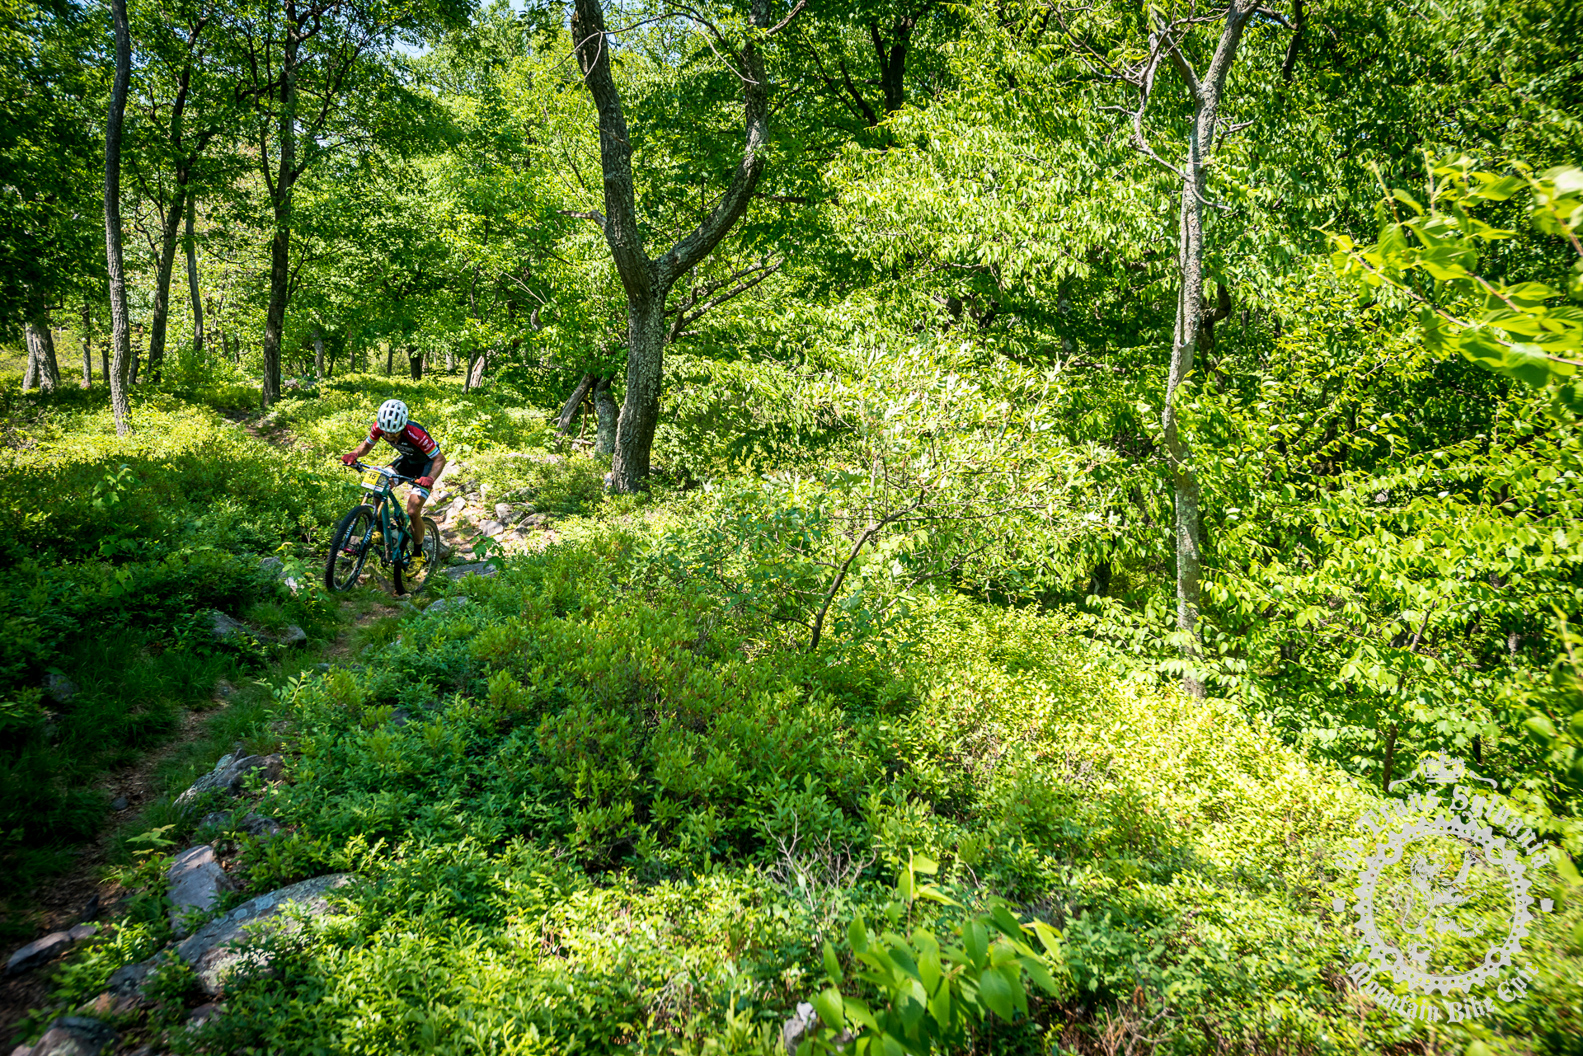 Tristan Uhl (Cometitive Cyclist) maneuvers through the rocks of Tussey Ridge.